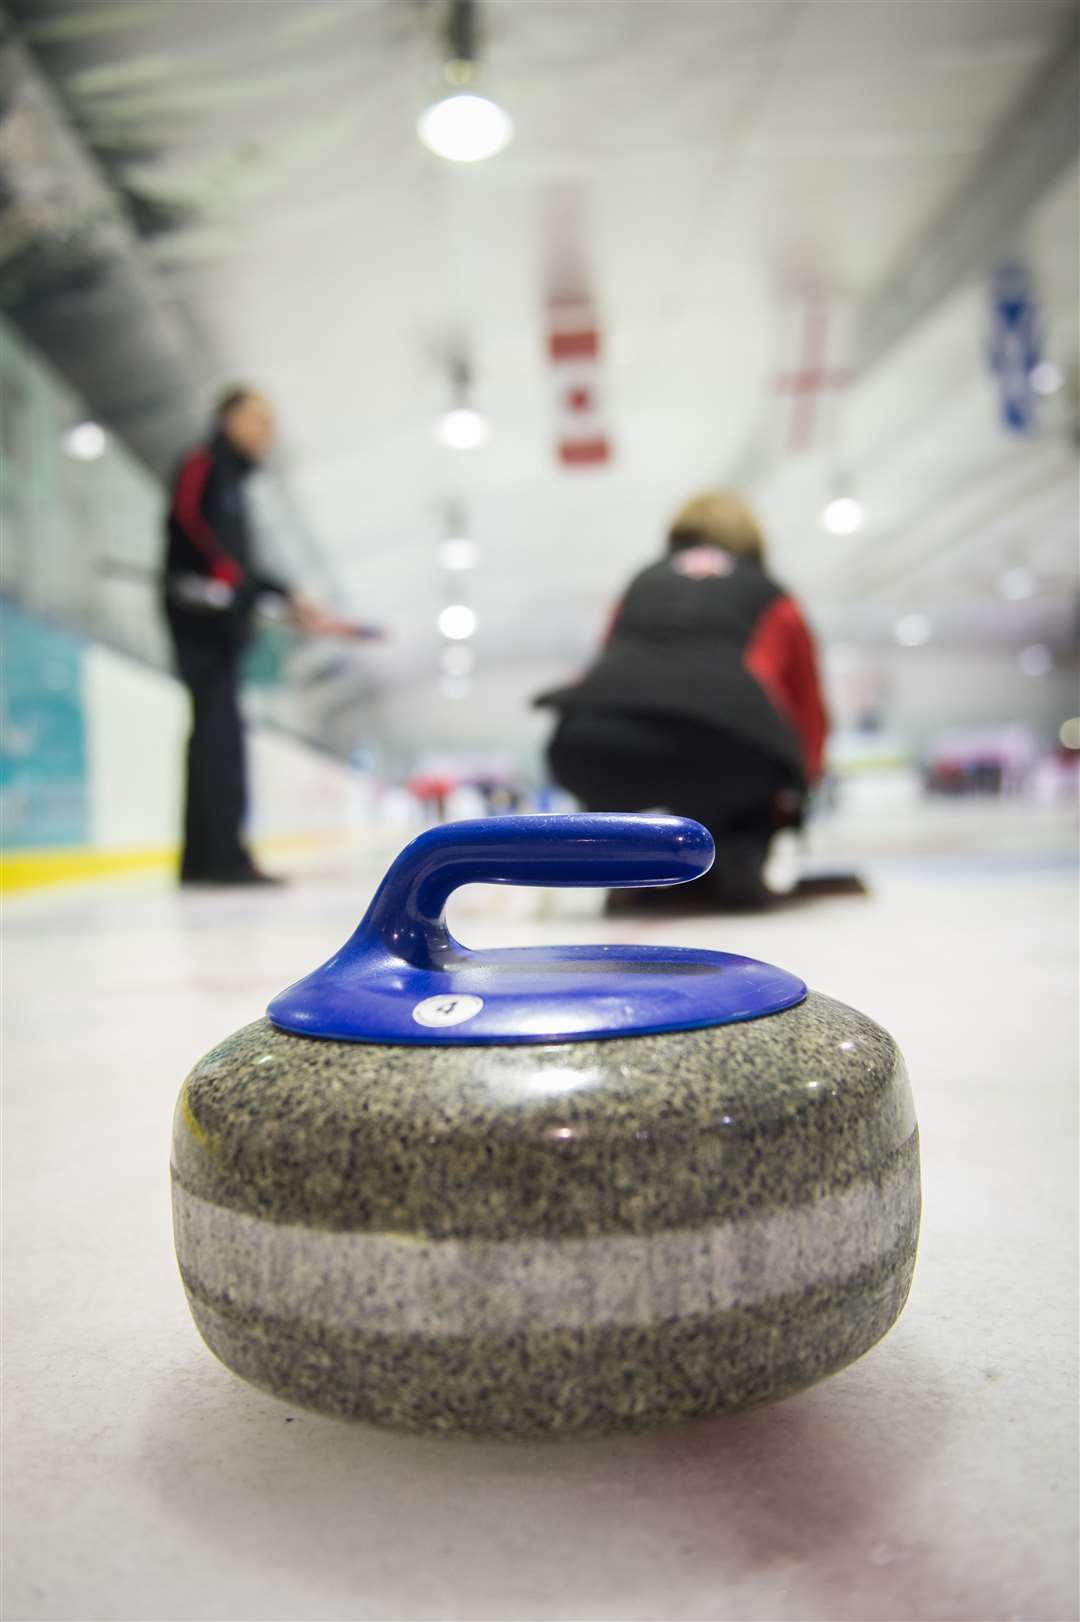 The 53rd Annual Week of International Curling at the Inverness Ice Centre....Picture: Callum Mackay. Image No. 043400.